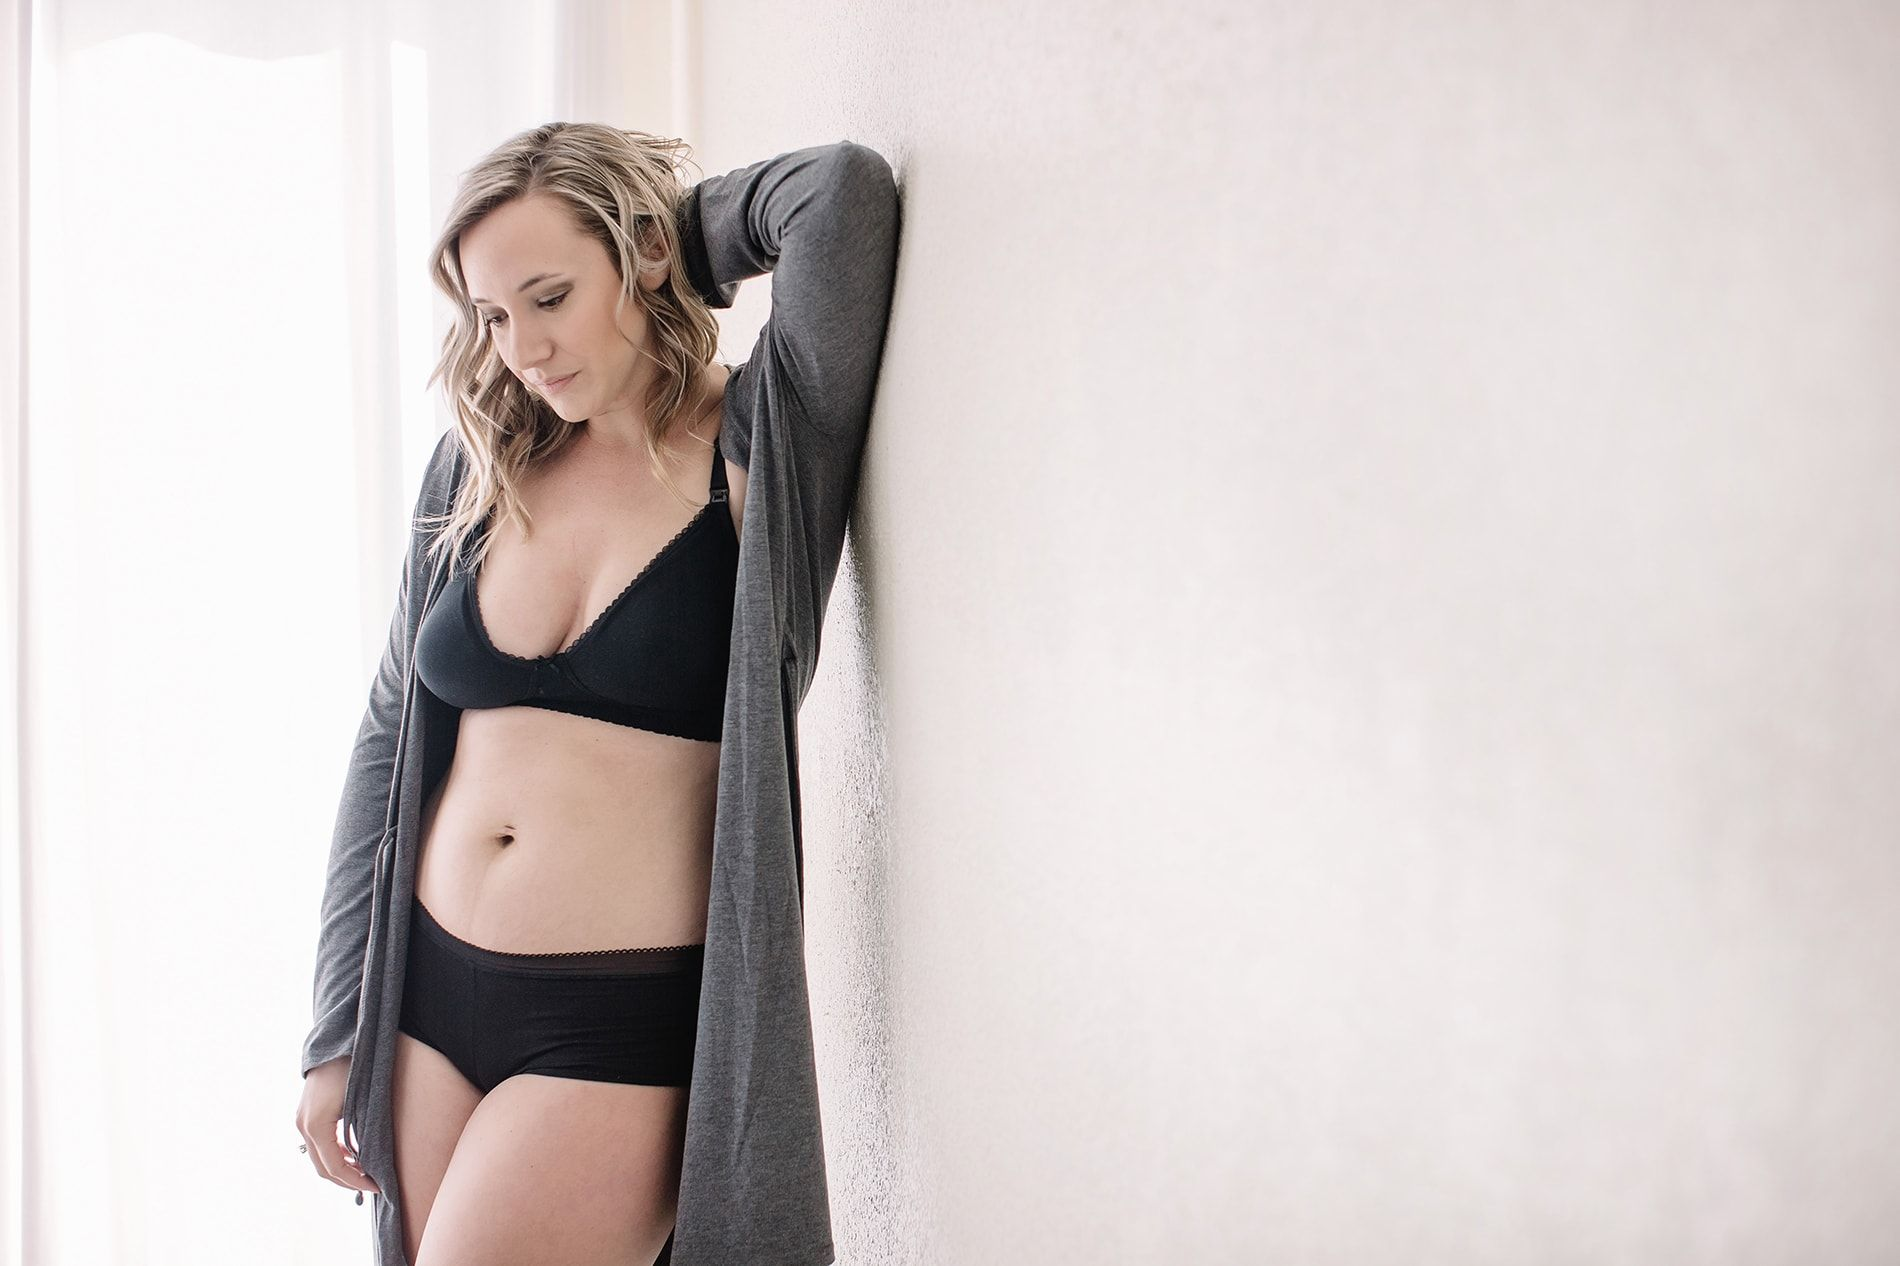 The Beautiful Yootoo Maternity Bra - With seamless soft cups 10c767c05